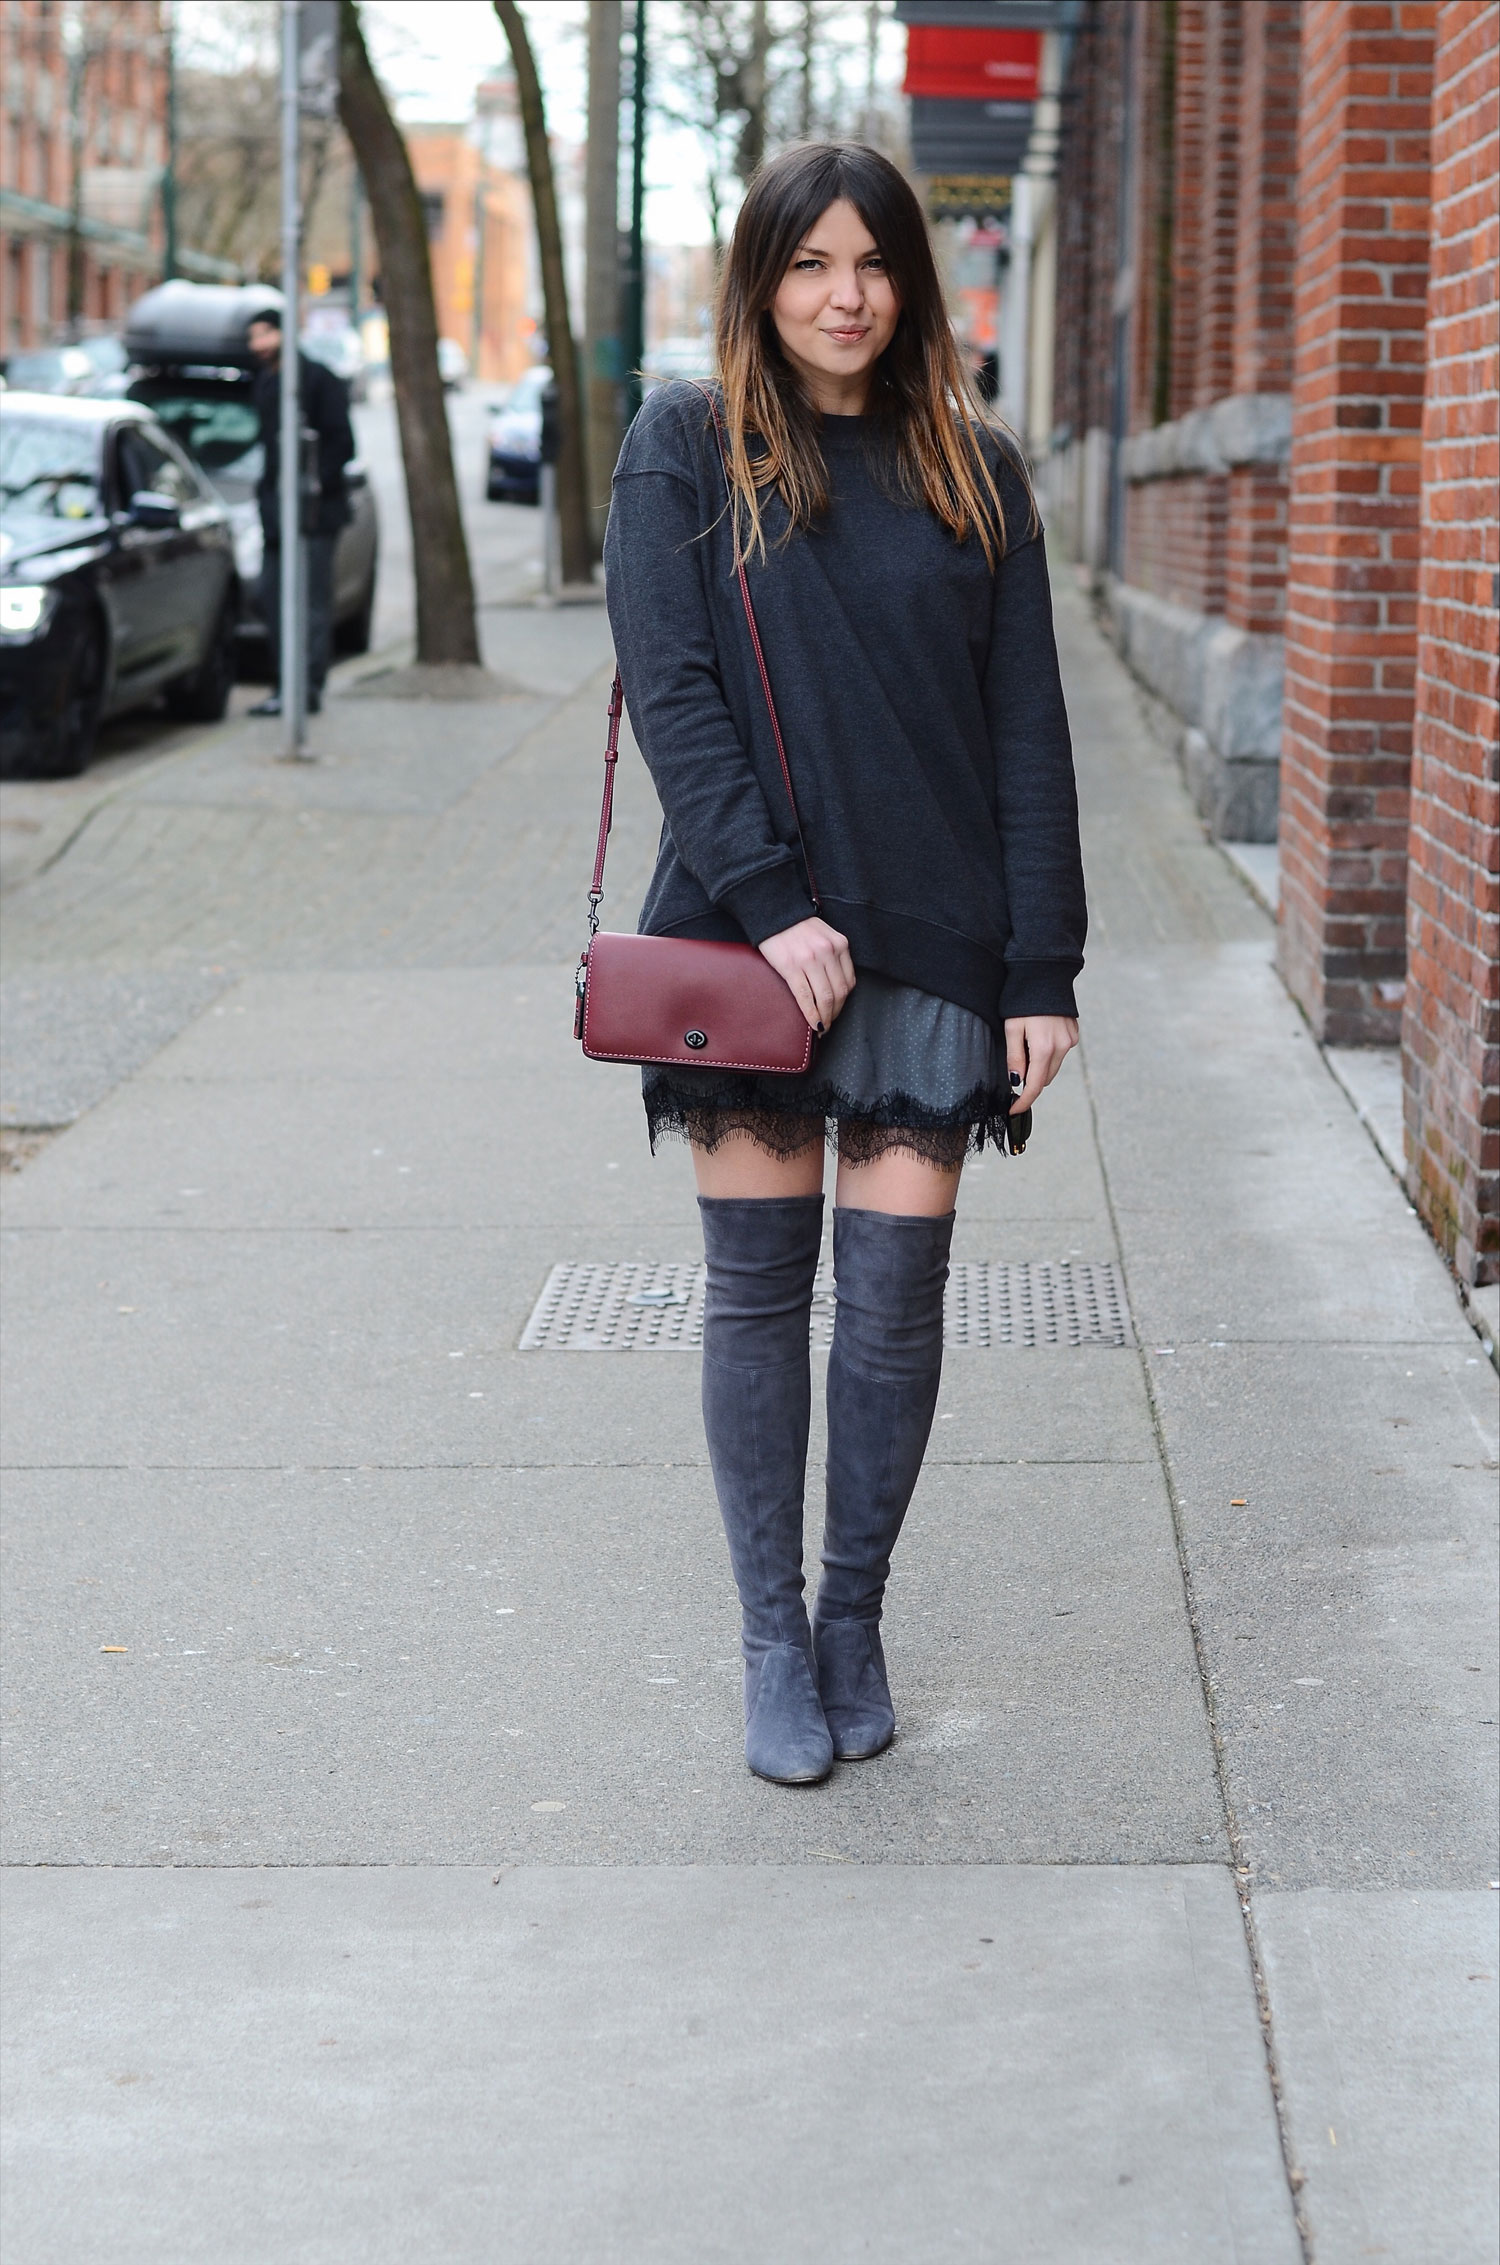 dress-over-the-knee-boots-outfit